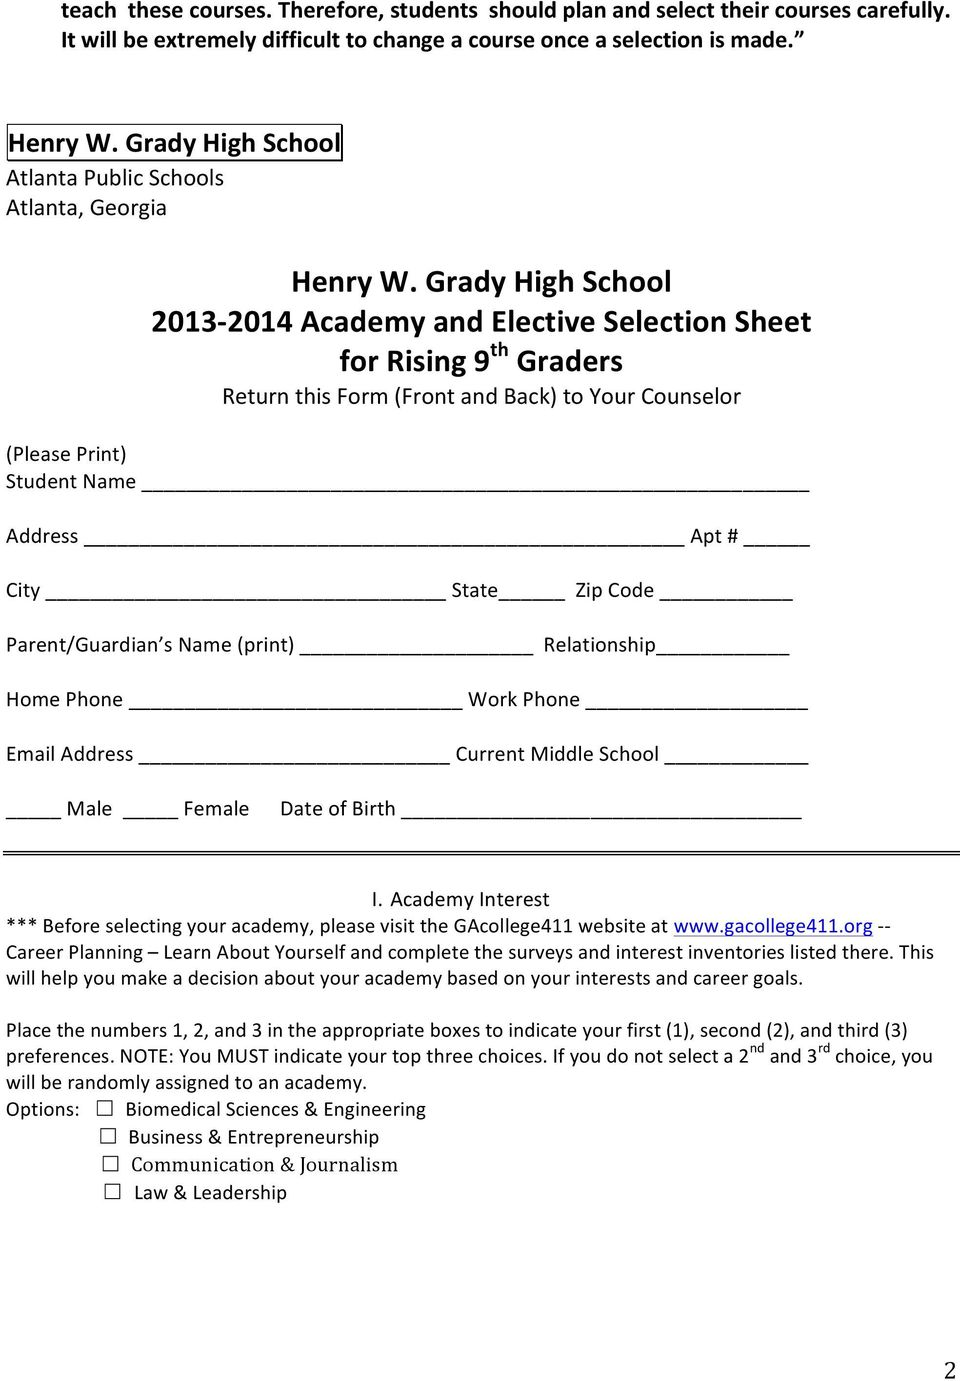 Grady High School 2013-2014 Academy and Elective Selection Sheet for Rising 9 th Graders Return this Form (Front and Back) to Your Counselor (Please Print) Student Name Address Apt # City State Zip